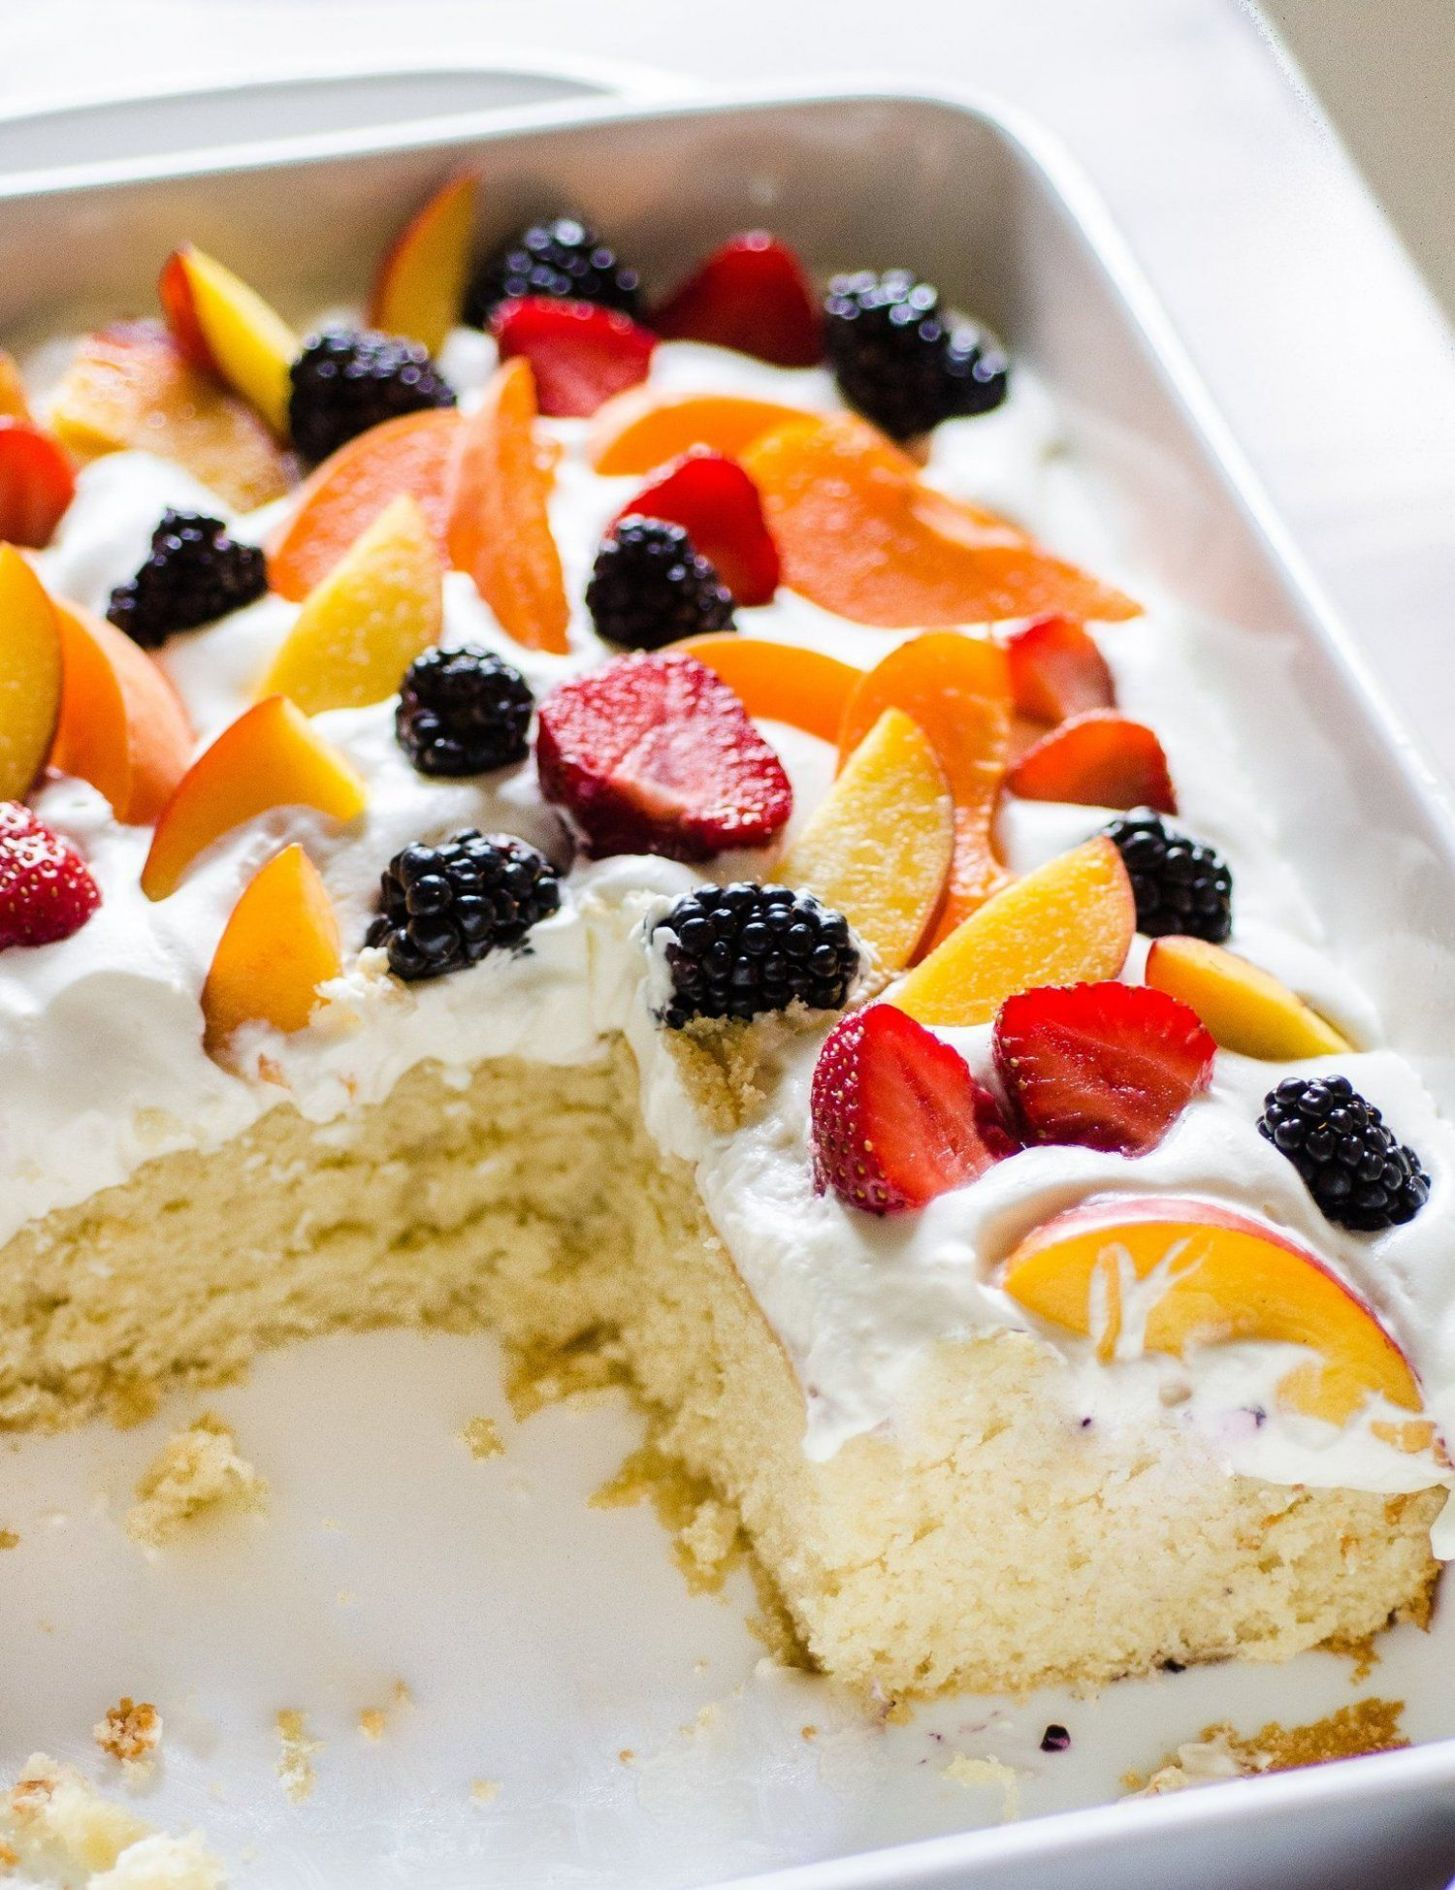 Easy Summer Cake with Fruit & Cream - Recipes Cake With Fruit